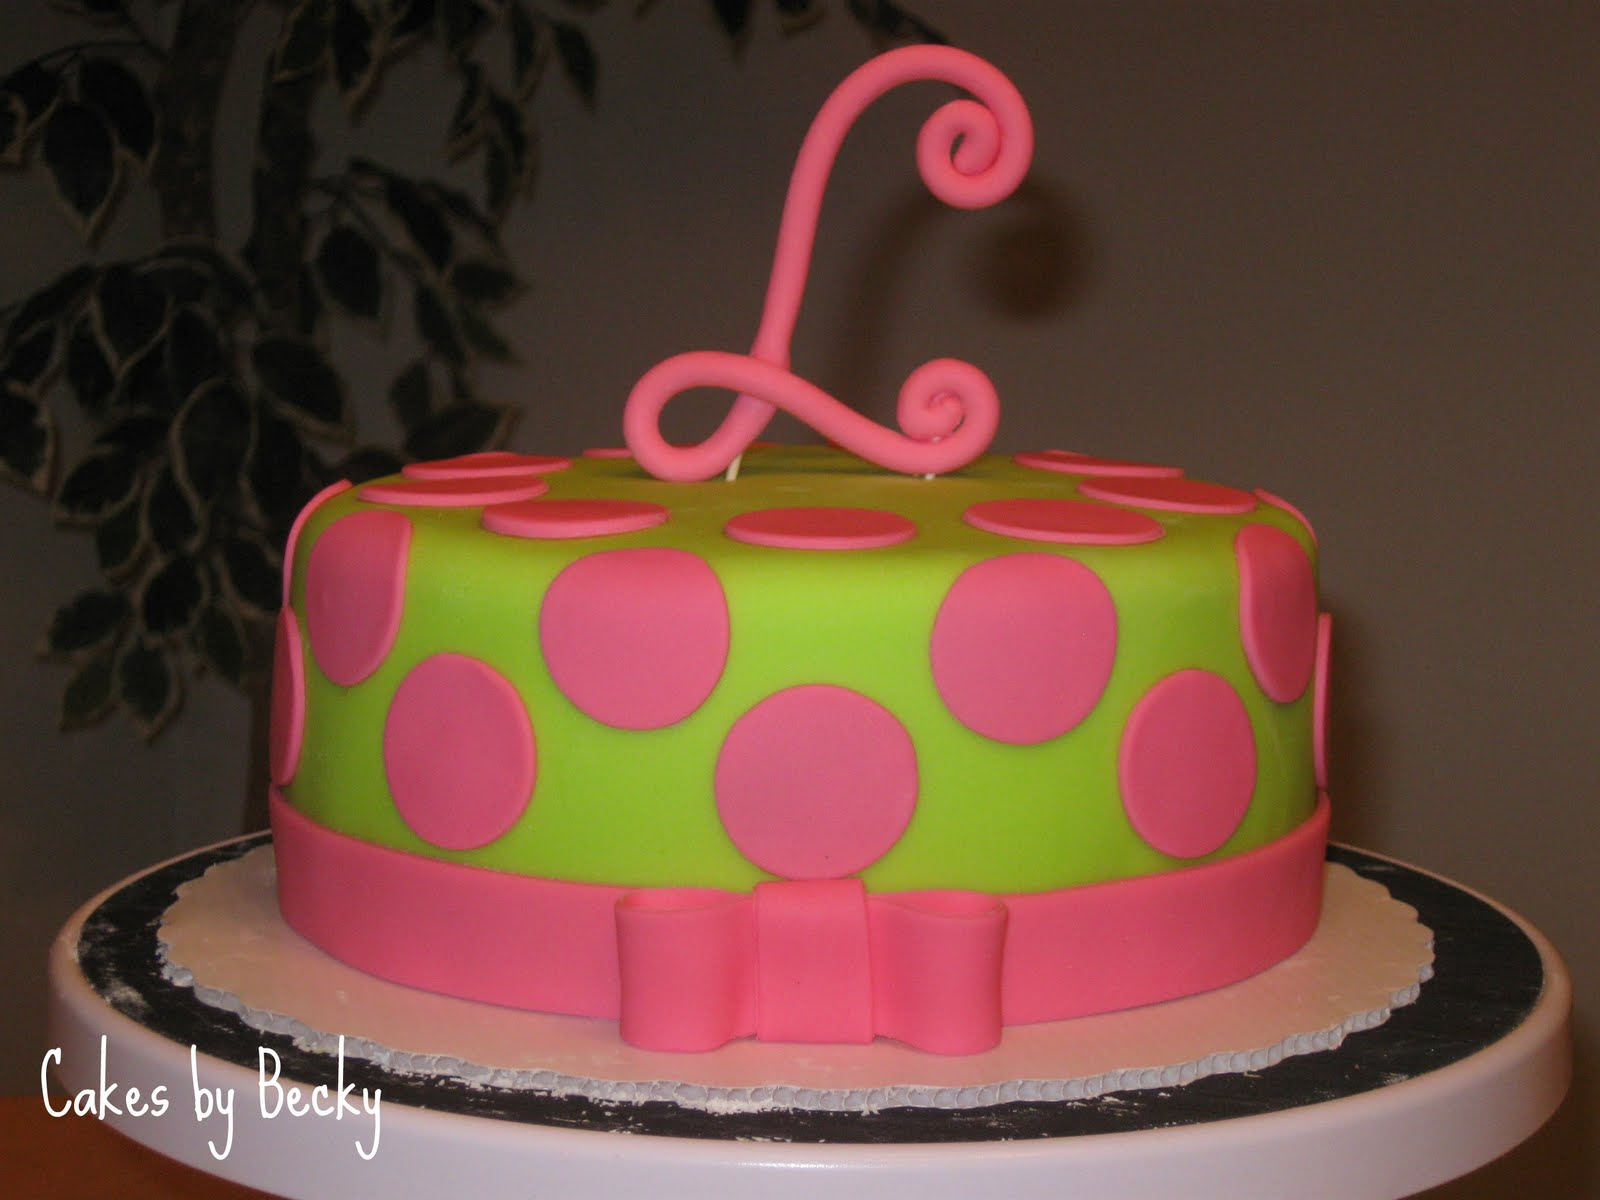 I Just Loved The Way This Cake Came Together Birthday Requested Pink Green And A Curly L For Topper Her So That S Exactly What She Got